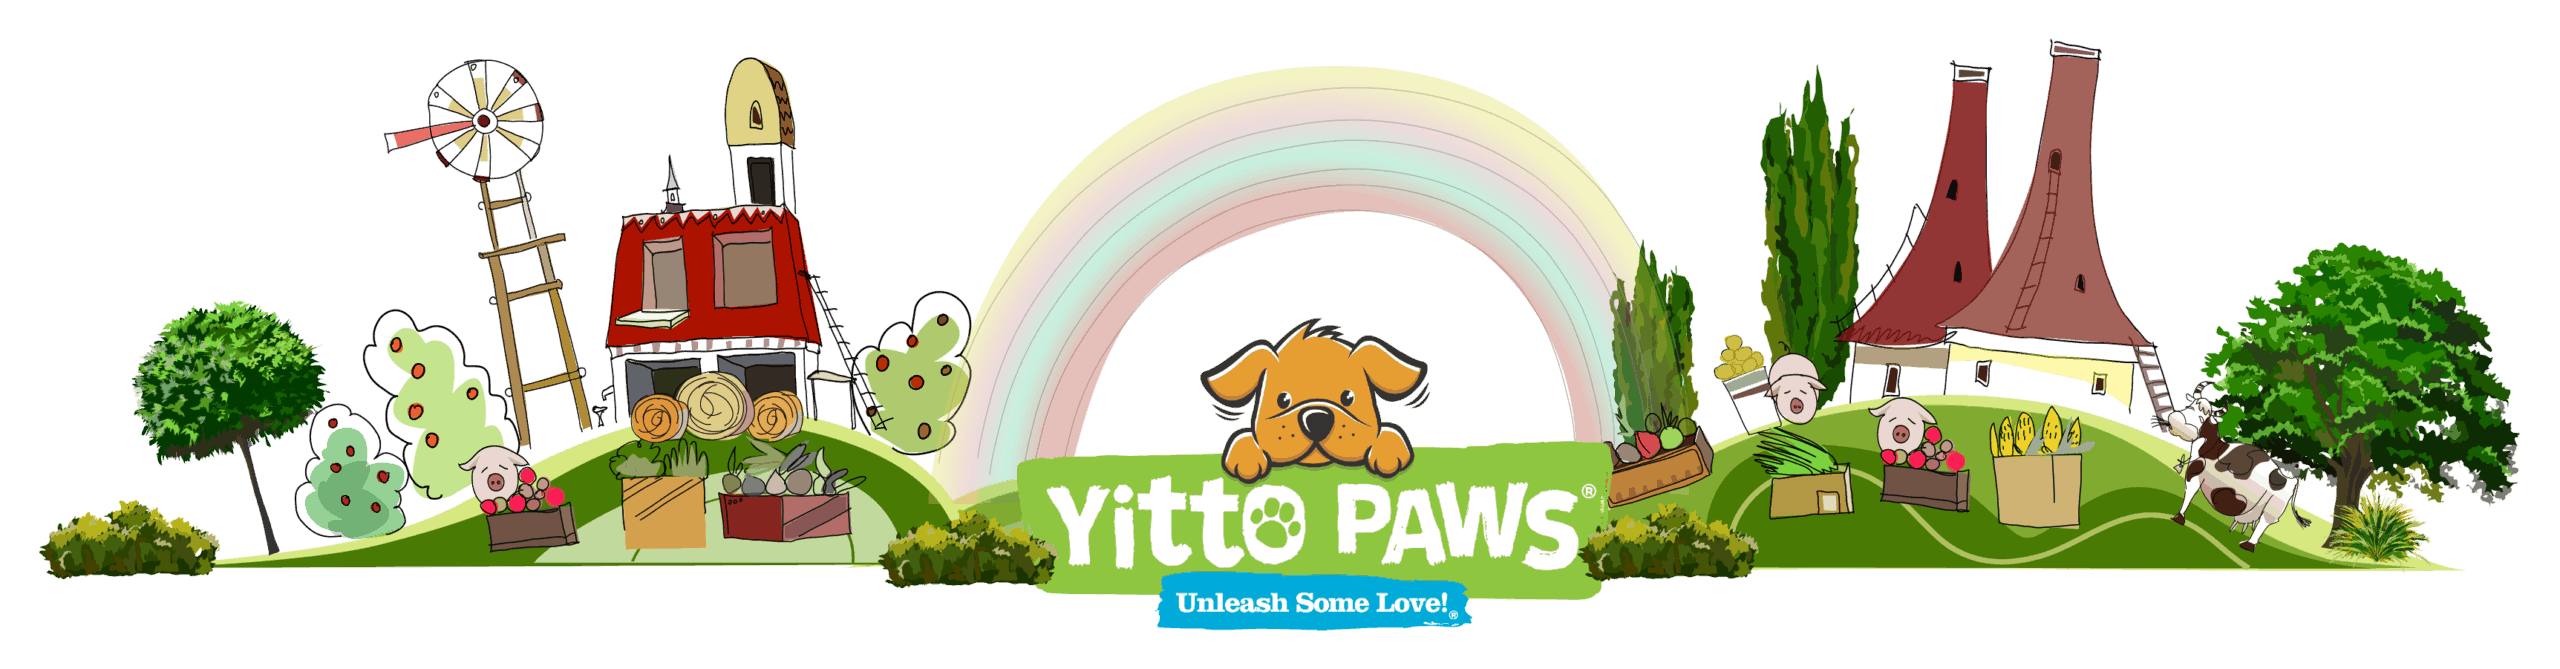 Unleash Some Love with your dog and Create a Better World